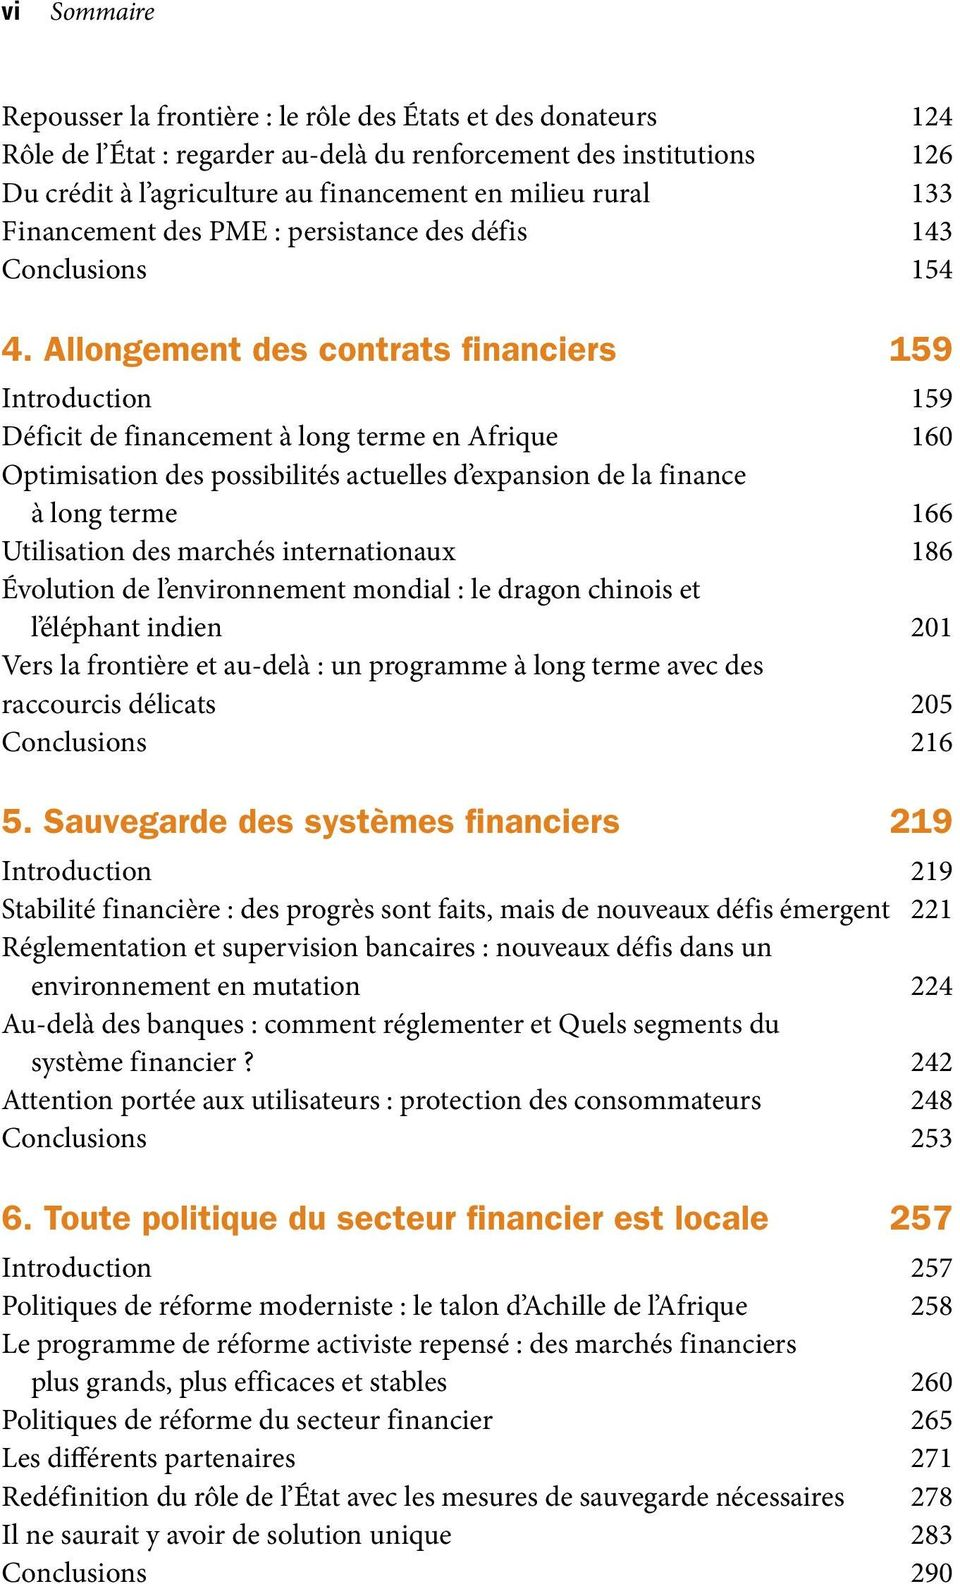 Allongement des contrats financiers 159 Introduction 159 Déficit de financement à long terme en Afrique 160 Optimisation des possibilités actuelles d expansion de la finance à long terme 166